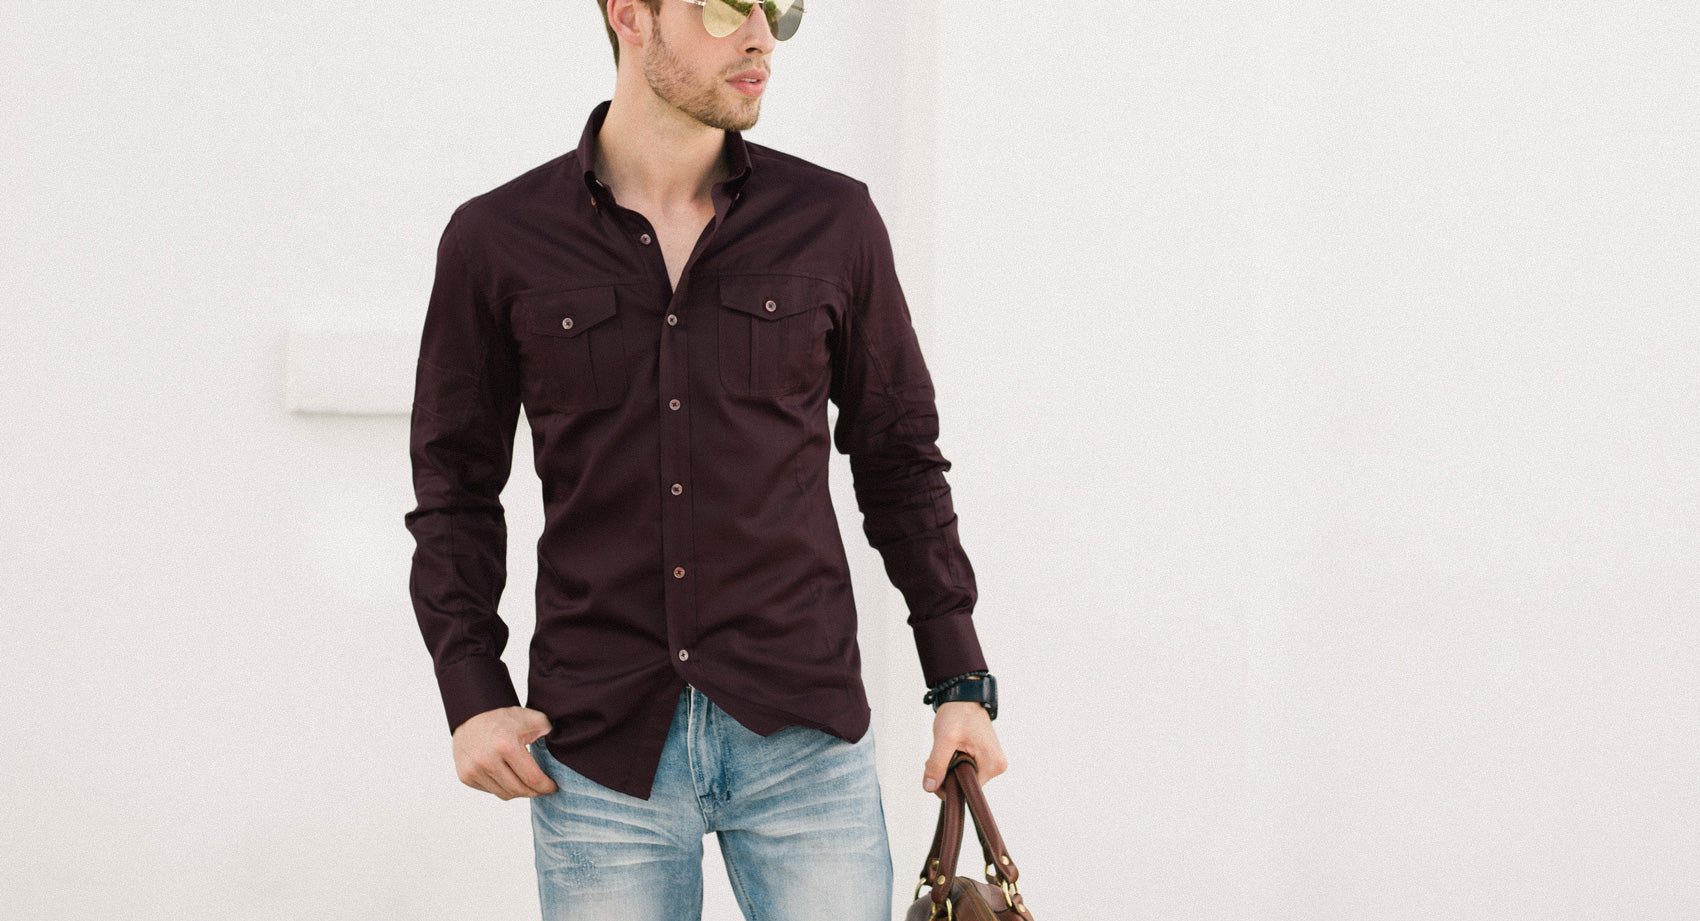 Black Men's Utility Shirt